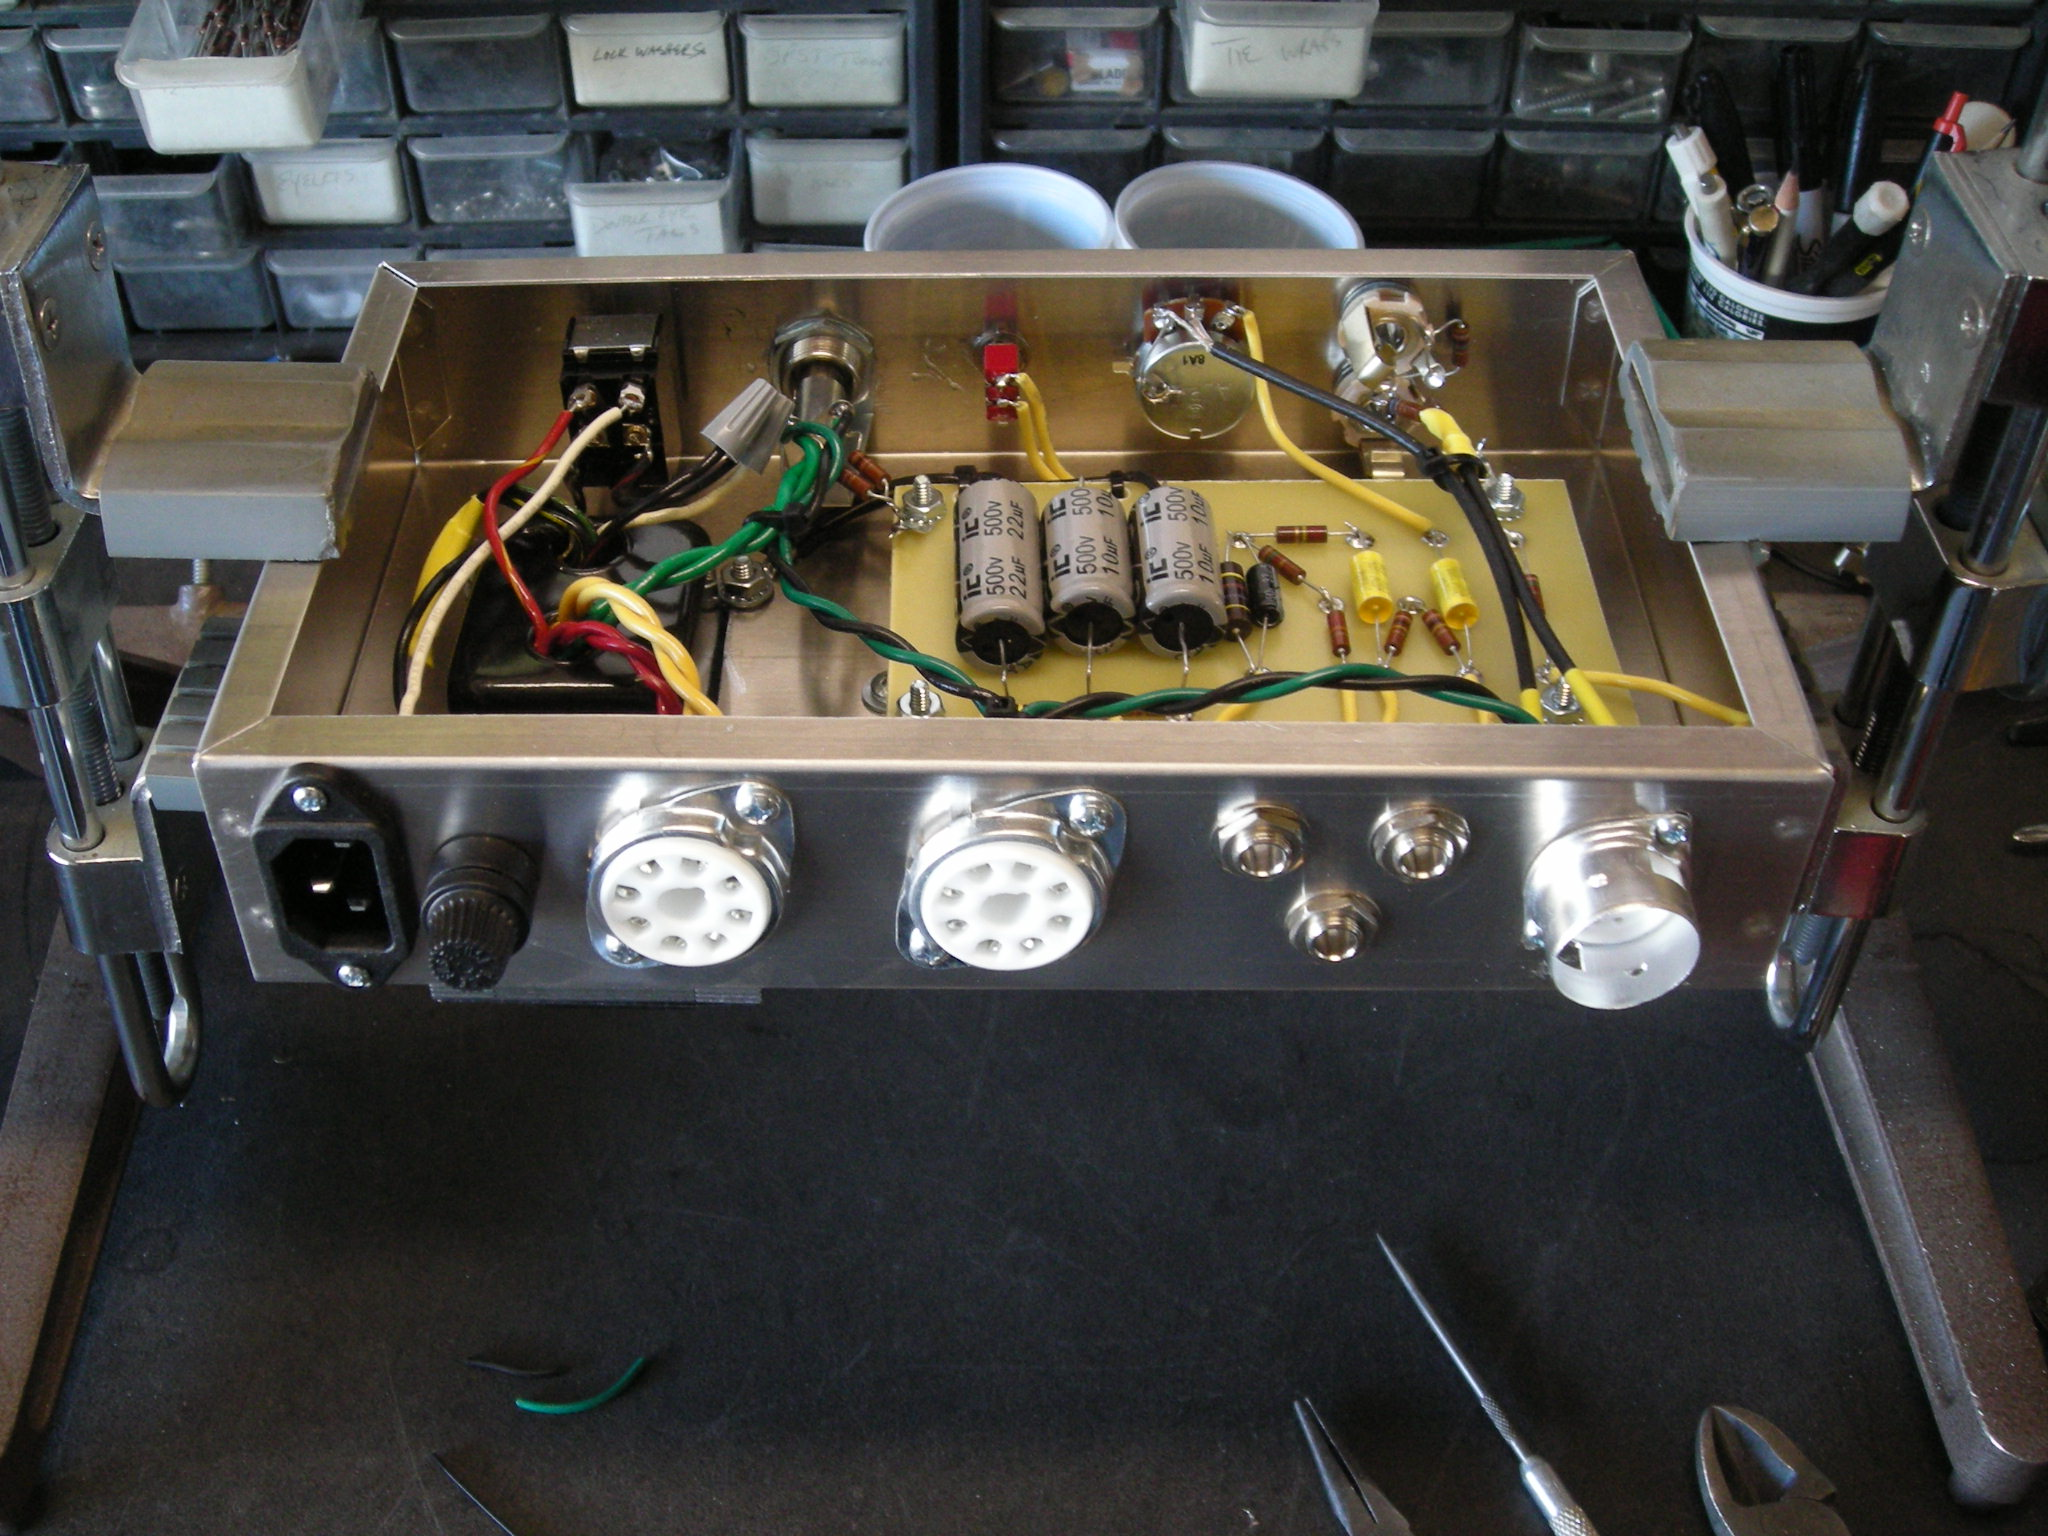 andys-finished-chassis-rear-view-worship-guitar-amp